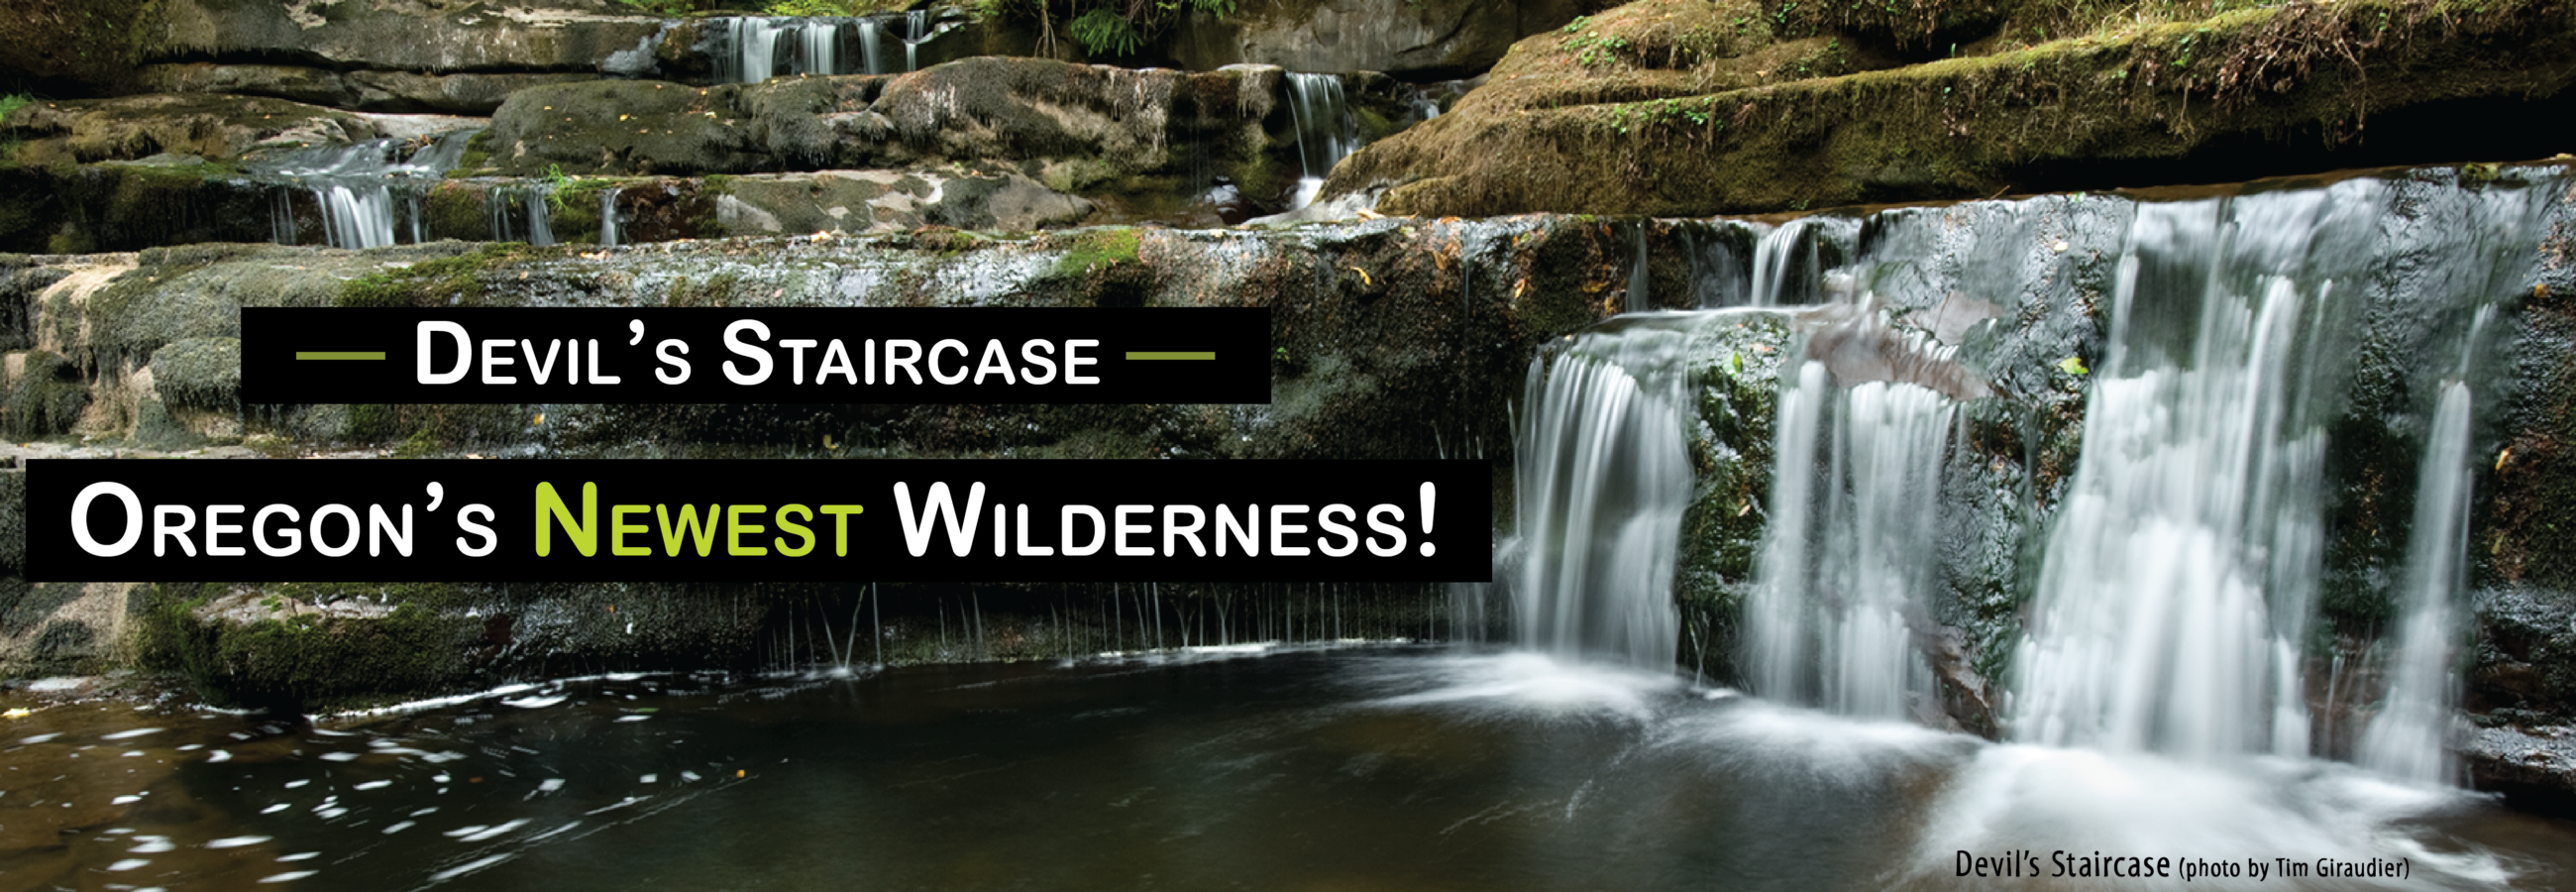 Oregon Wilderness Act signed into law by the president.